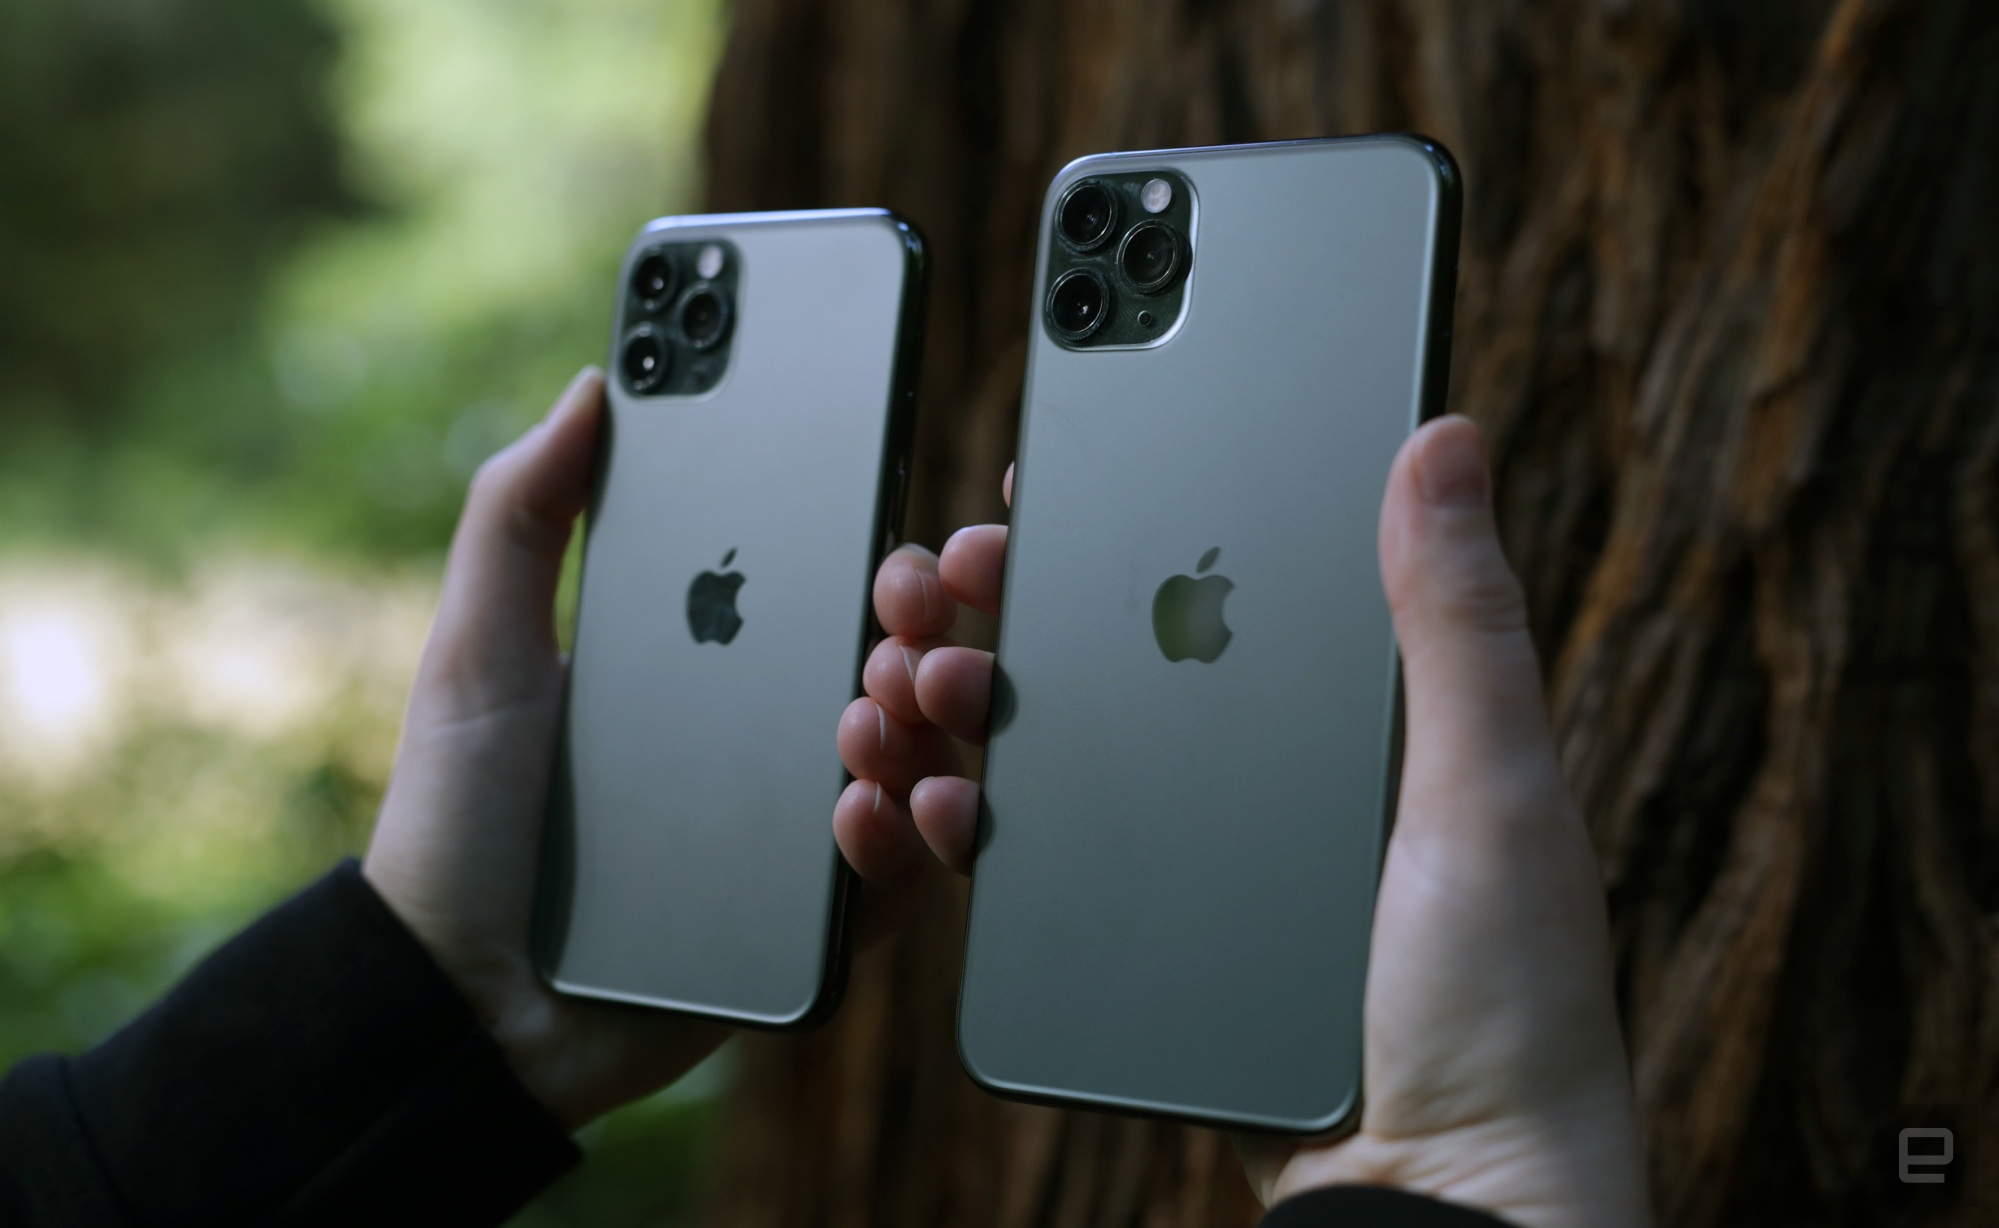 The Morning After: Apple's next iPhone will arrive a little late #rwanda #RwOT 大包平